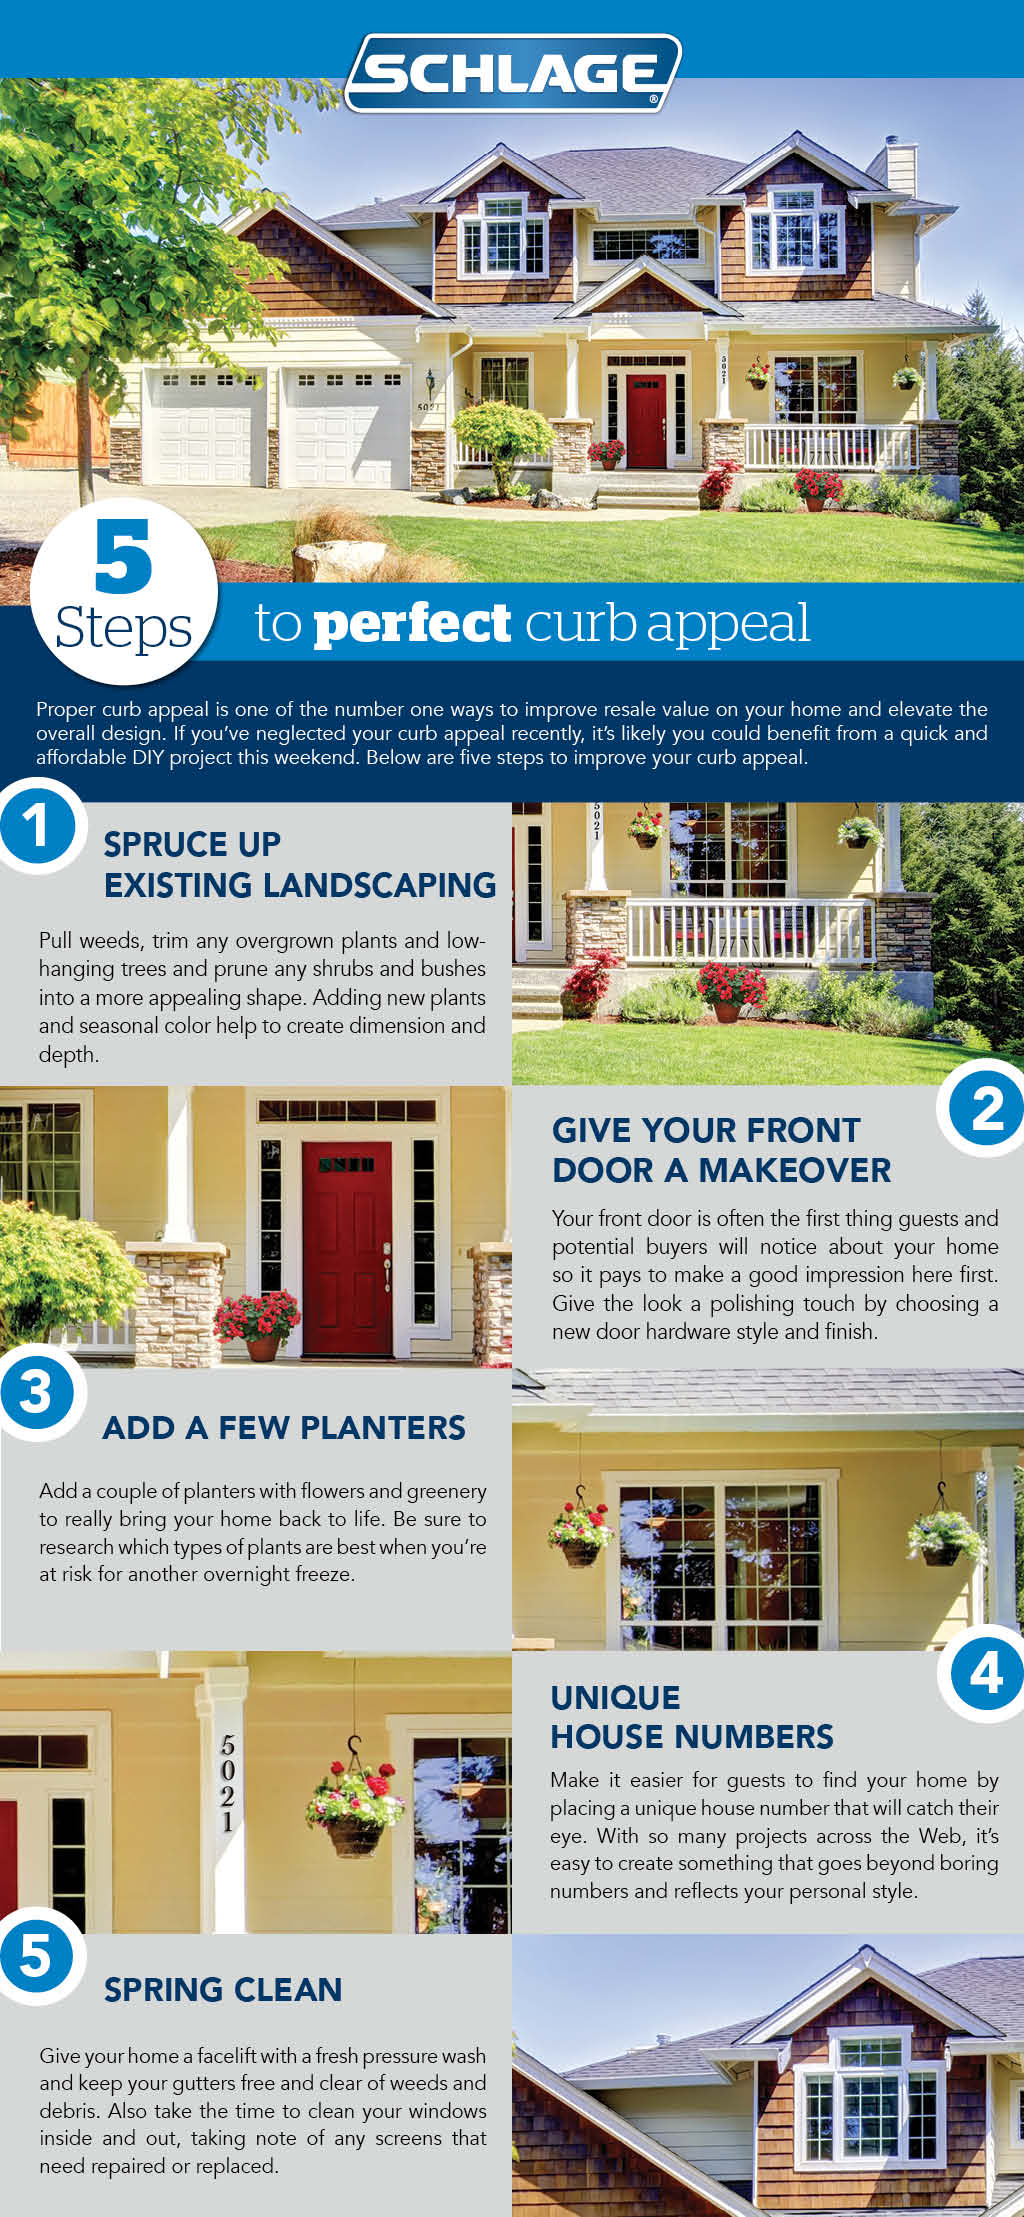 5 steps to perfect curb appeal | Schlage